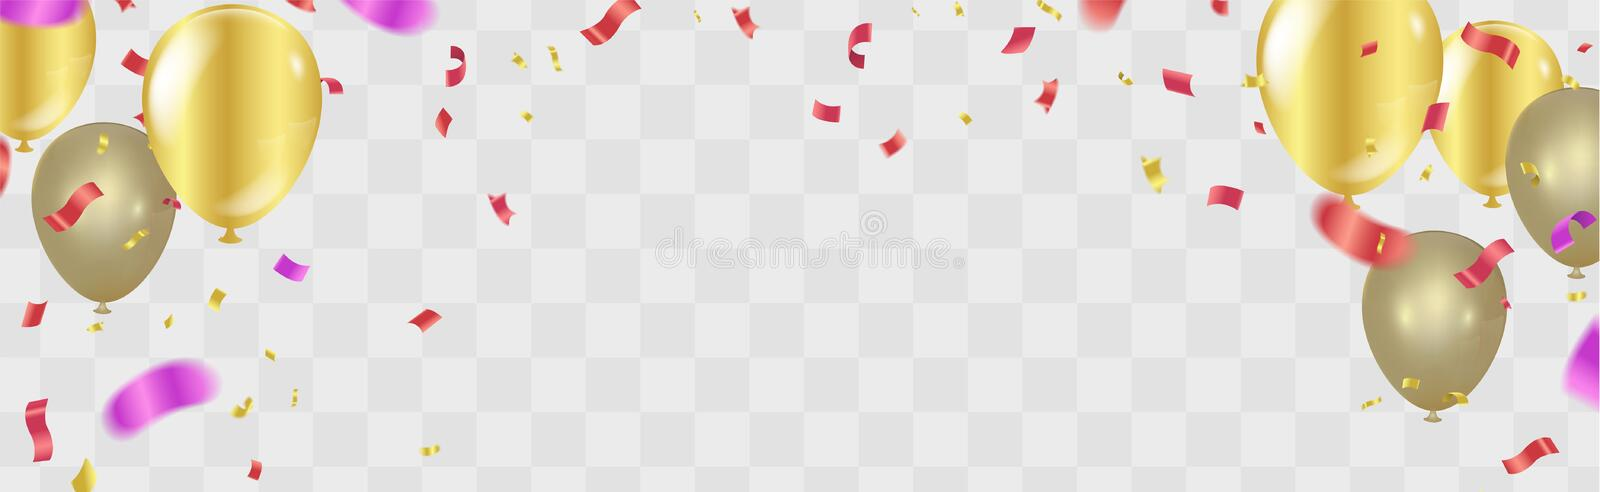 Happy birthday Gold confetti Celebration background vector illus royalty free illustration